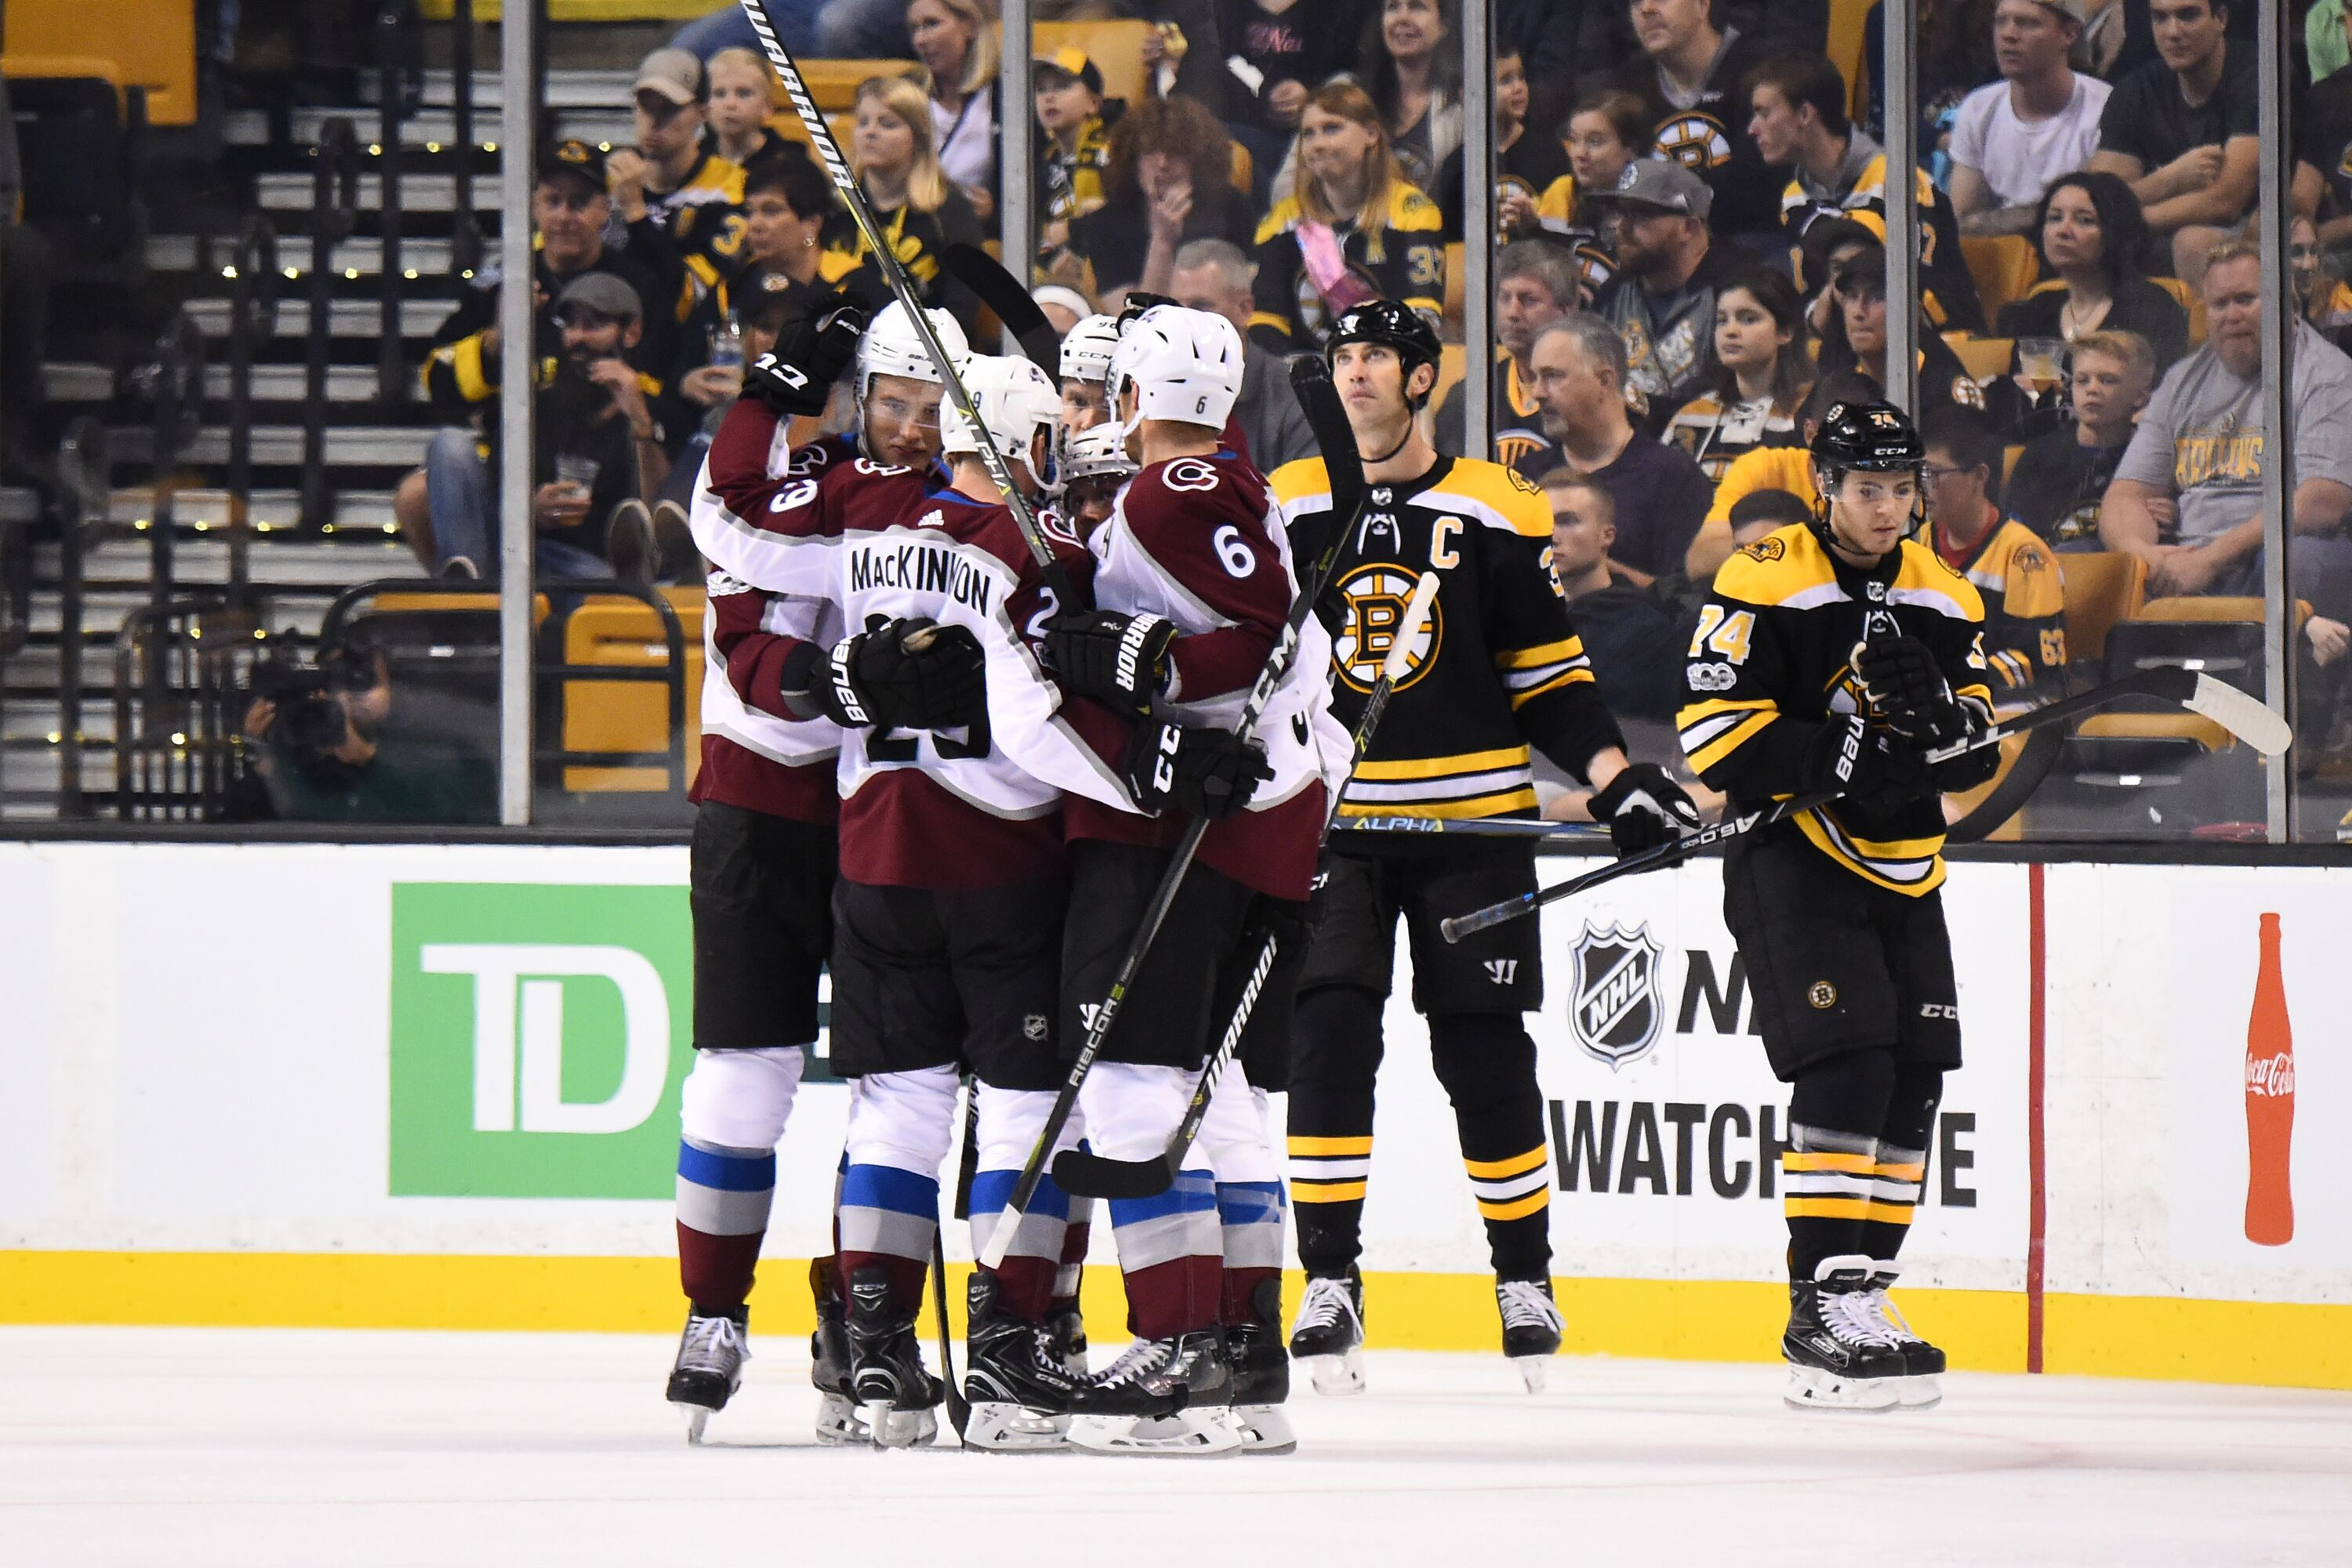 Boston Bruins: Boston Bruins Downed By Avalanche At Home In Monday Matinee